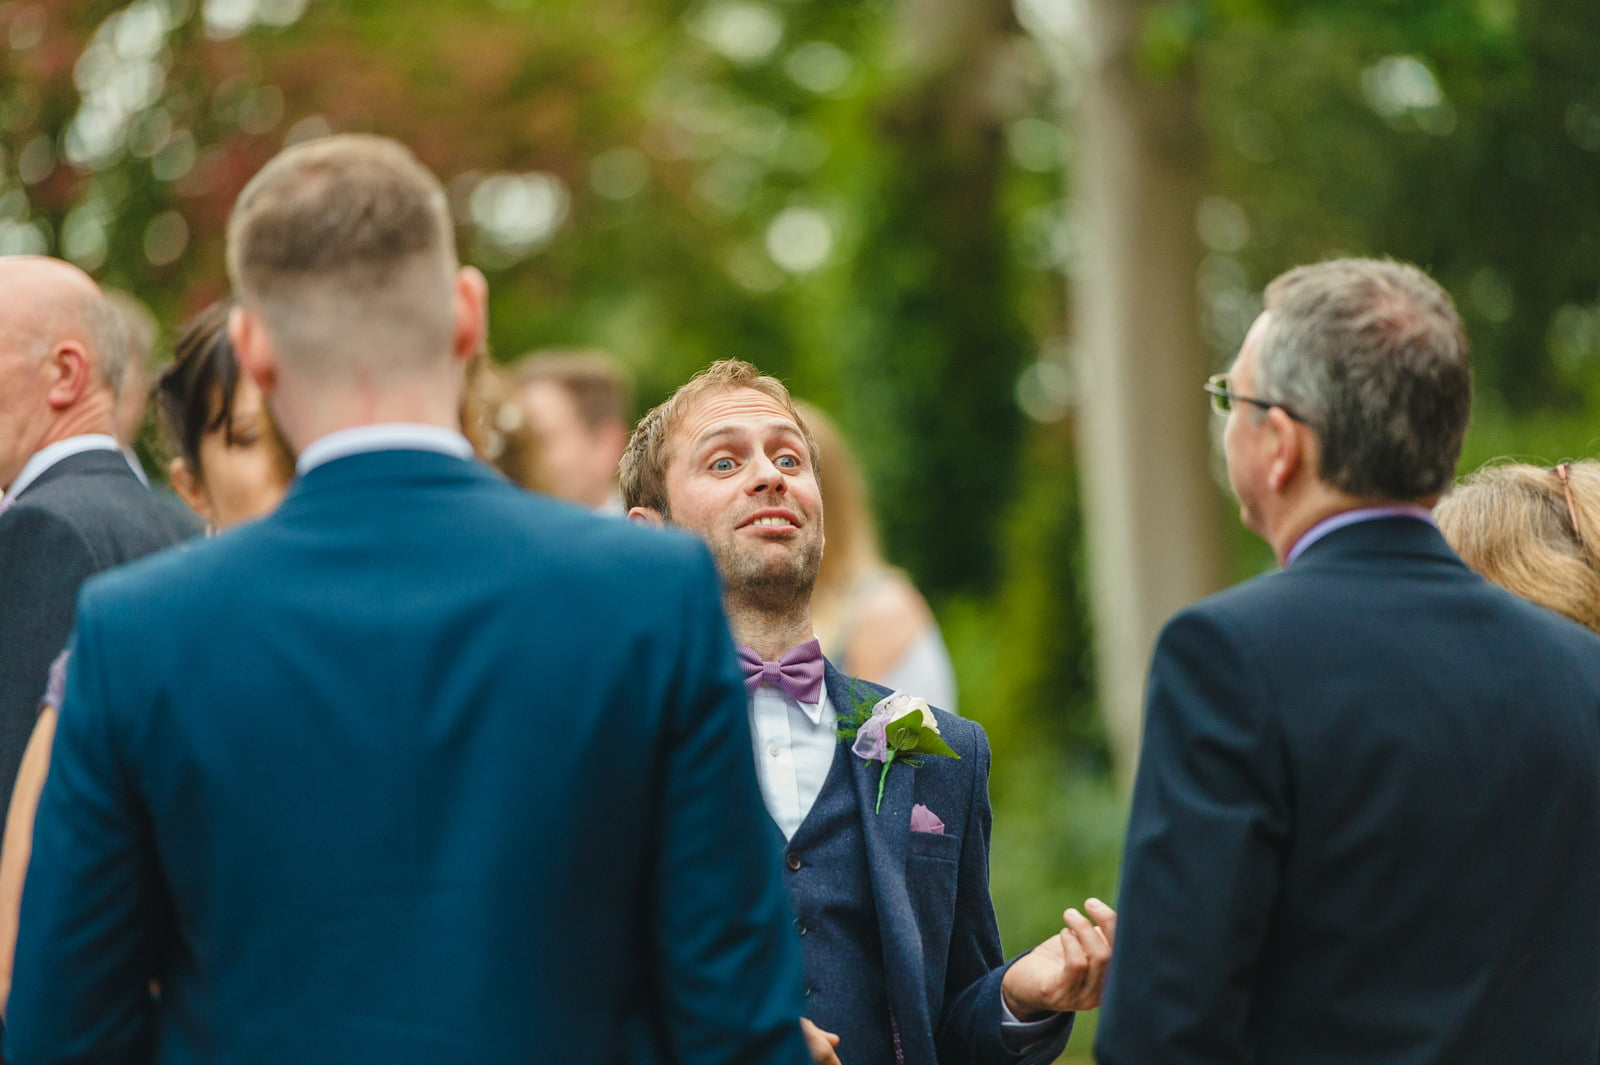 millers of netley wedding 30 - Millers Of Netley wedding, Dorrington, Shrewsbury | Emma + Ben